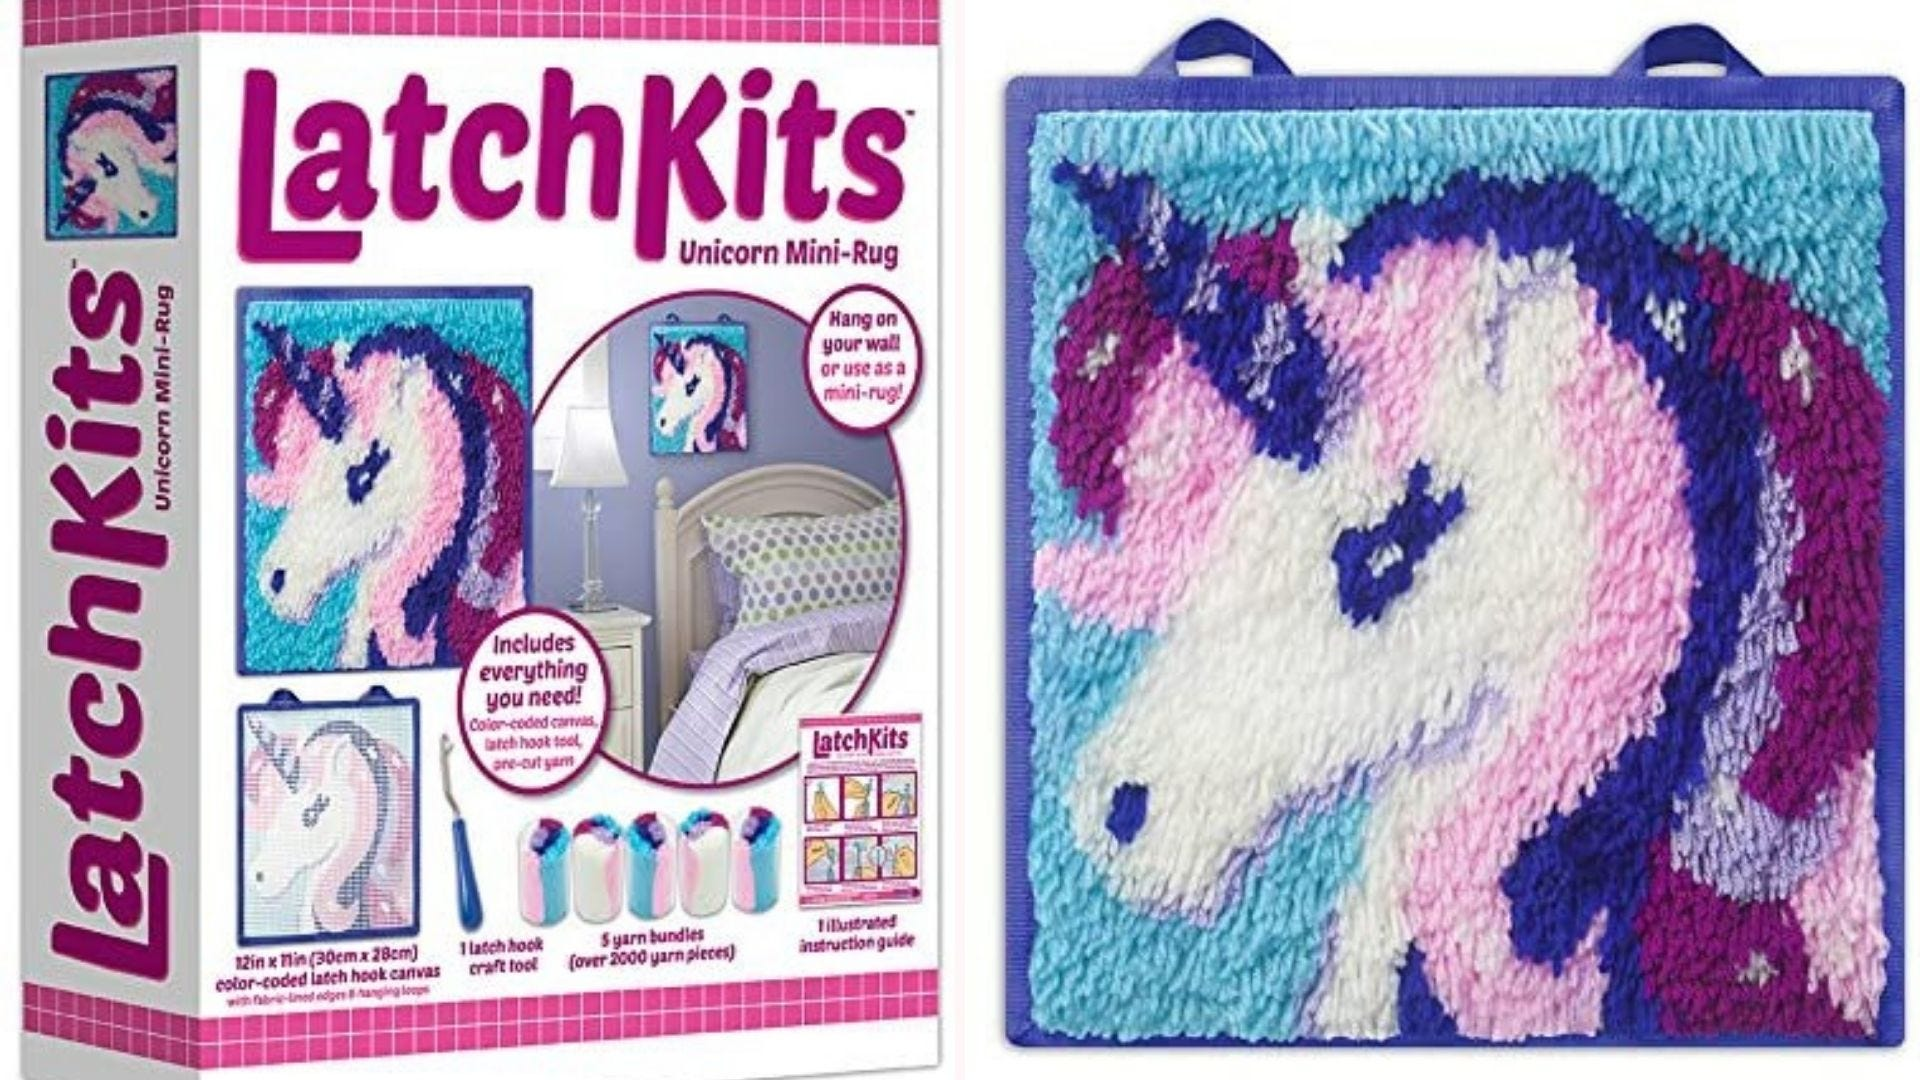 a LatchKits unicorn mini-rug kit in box and completed